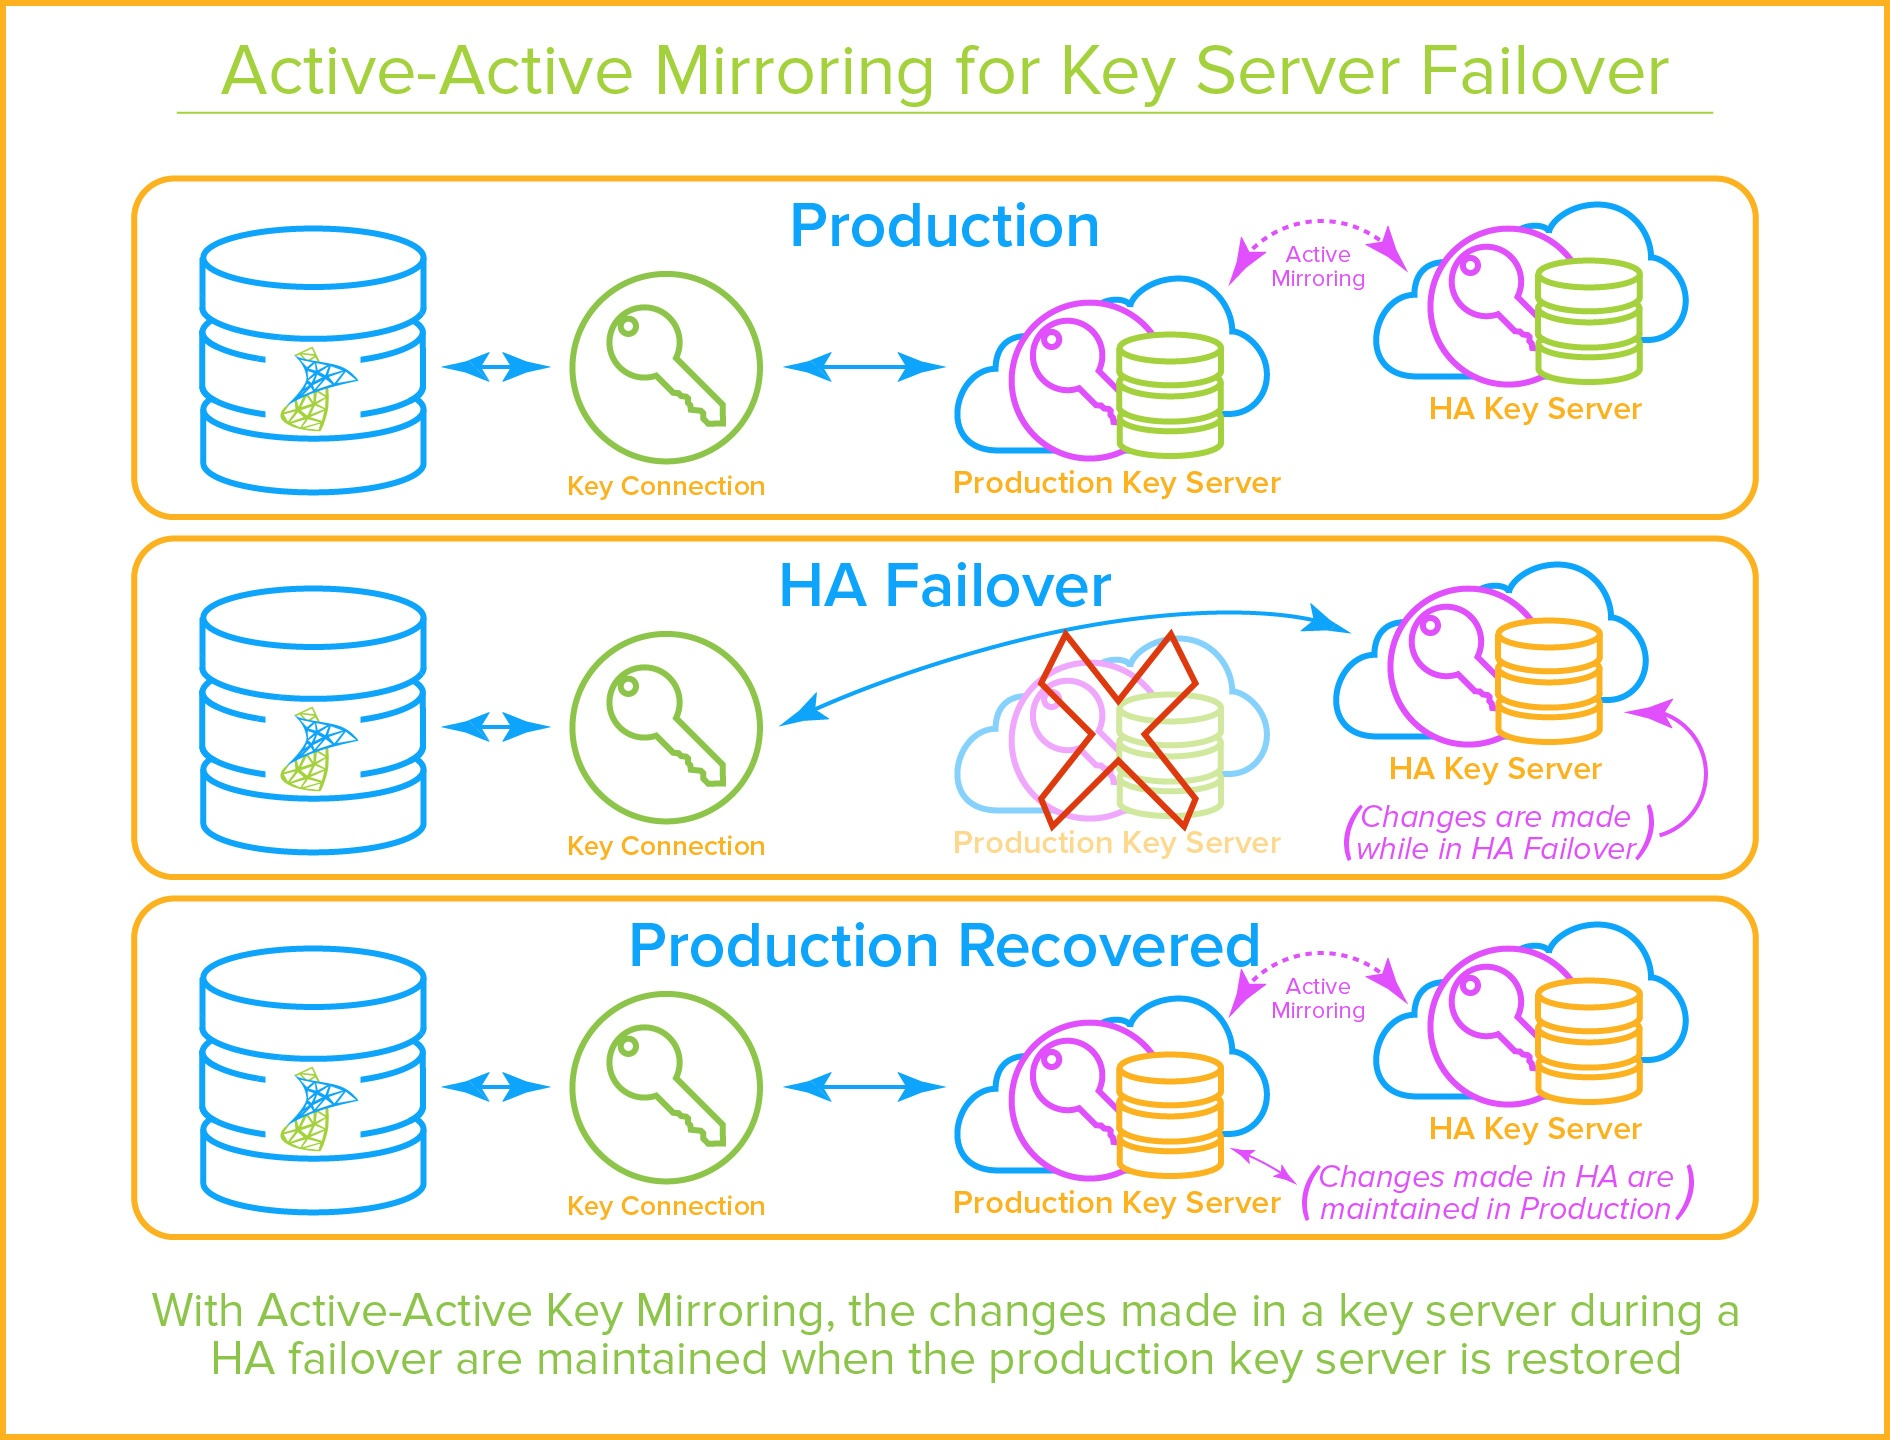 SQL Server EKM Provider - Active-Active Key Mirroring